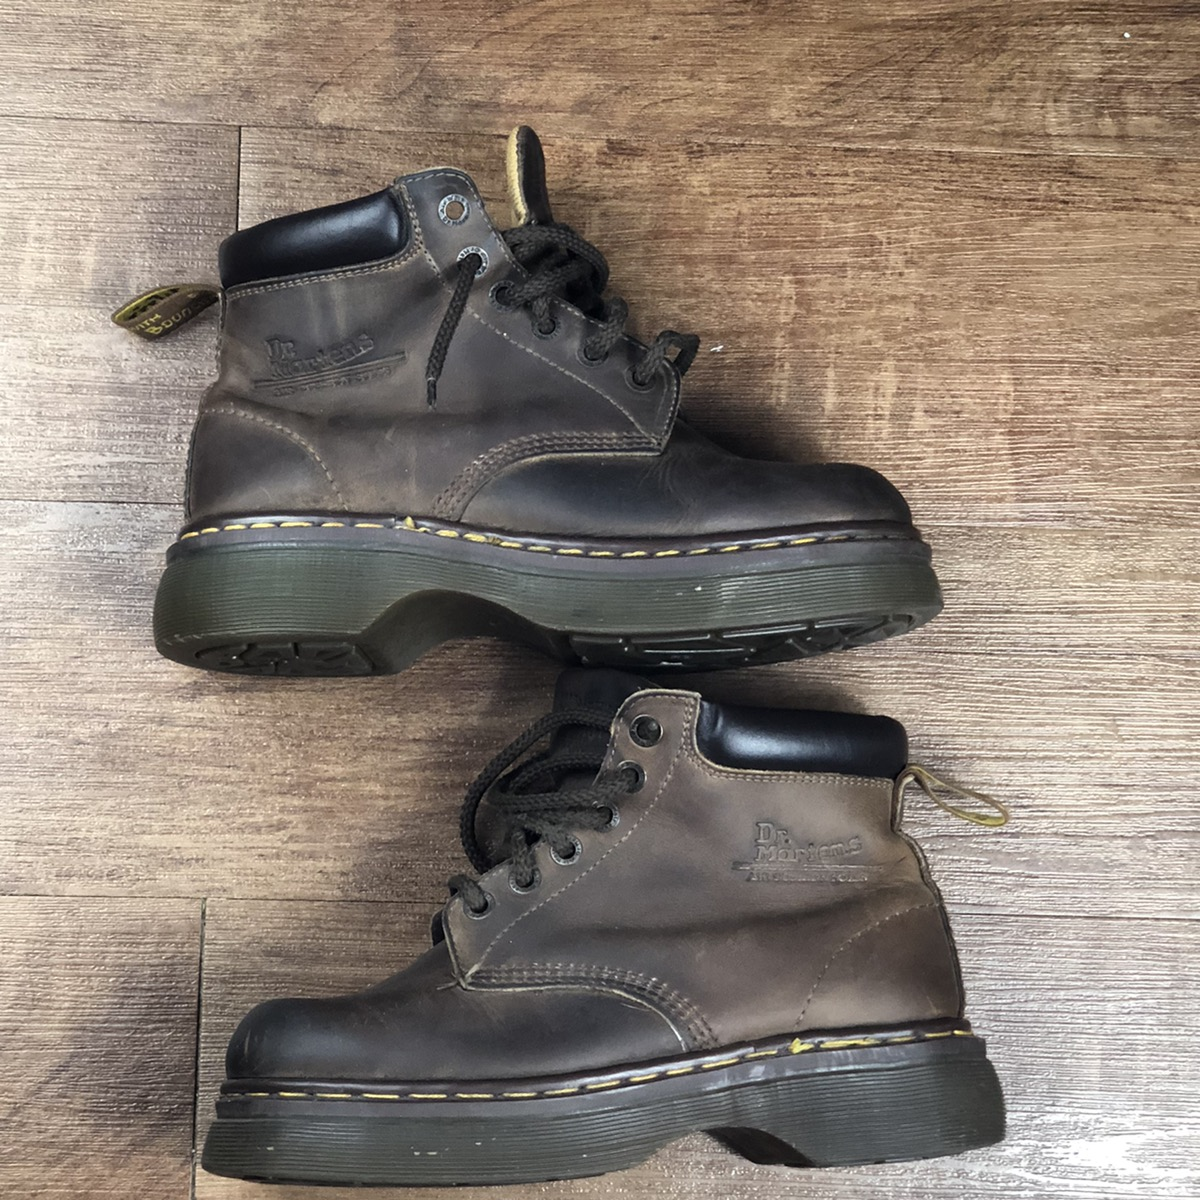 Vintage 1990s Mens DOC MARTENS Distressed Brown Leather Lace Up Boots Size US 9 9.5 Made in England Hipster Grunge